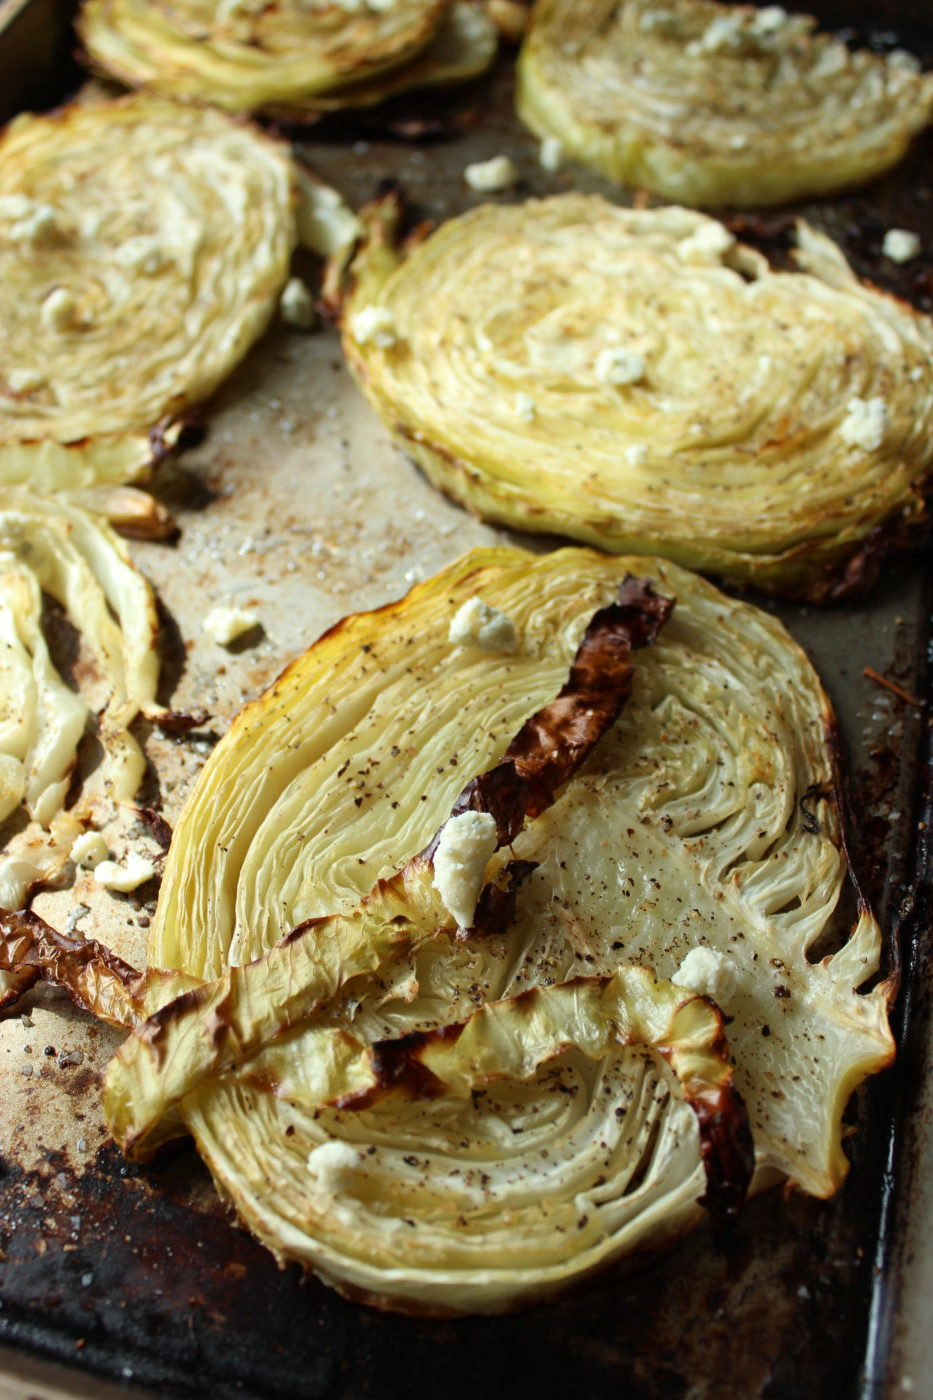 Roasted cabbage a delicious way to enjoy the vegetable.